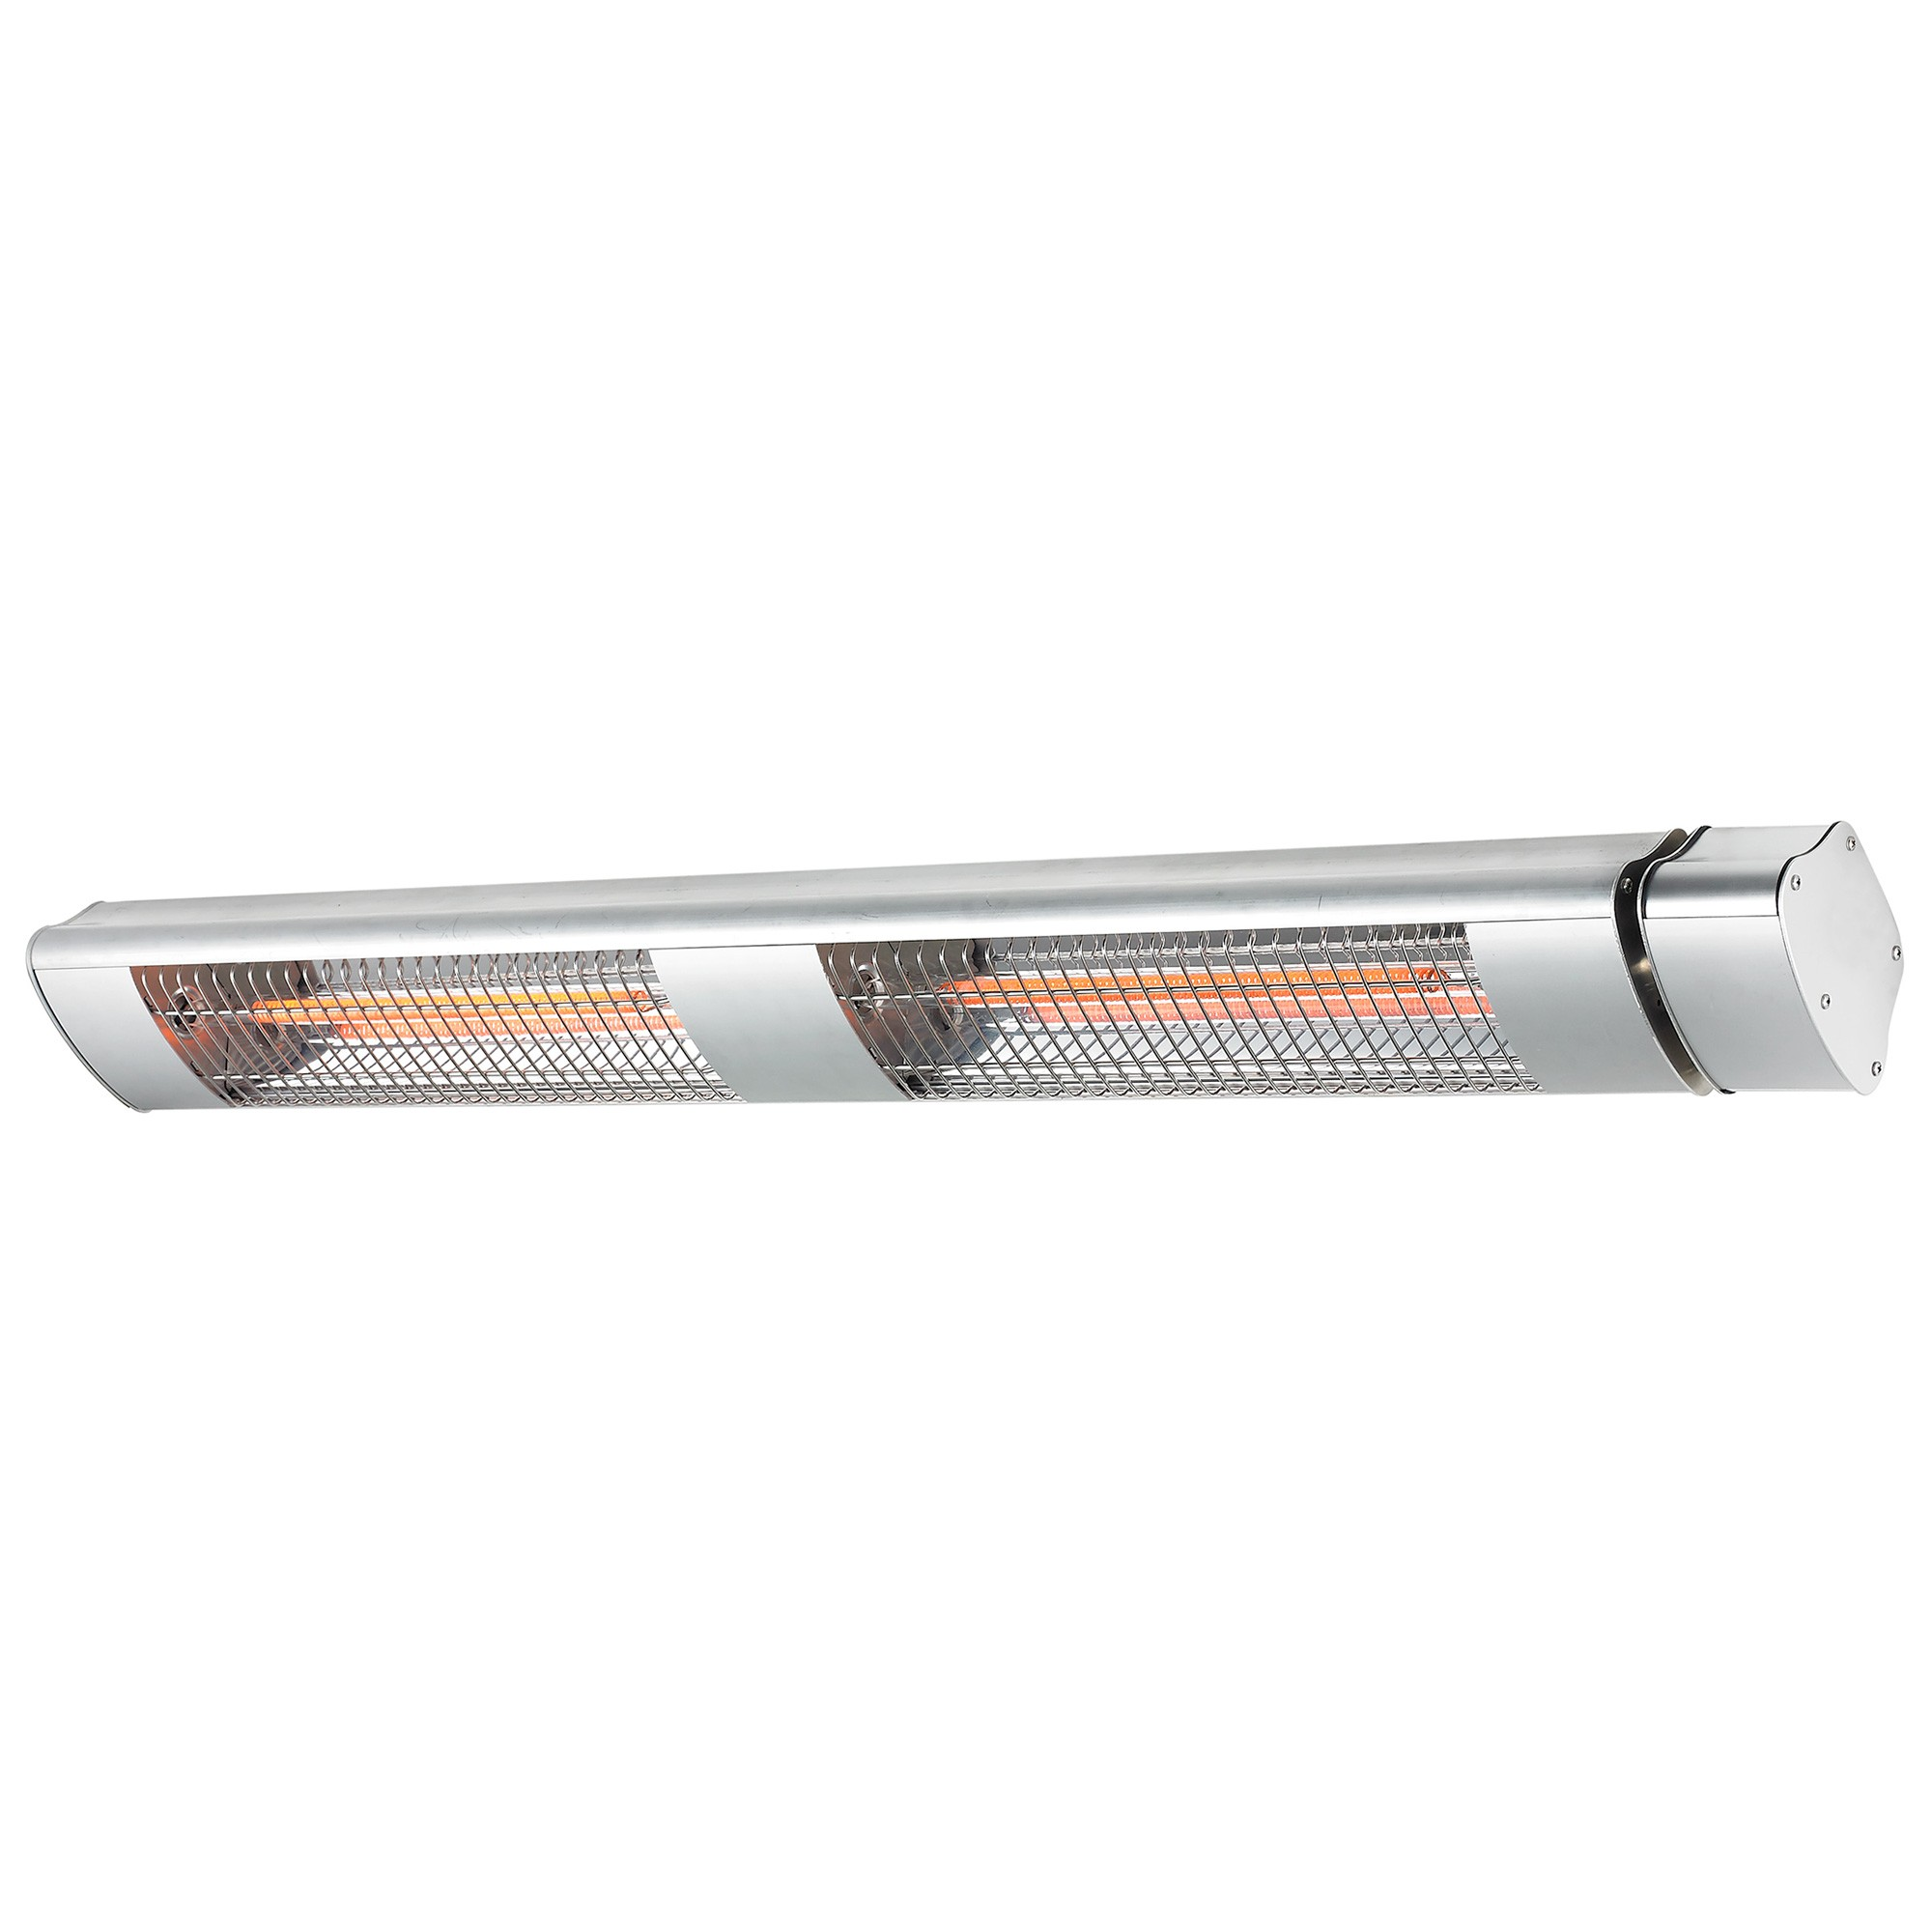 Ventair Heatwave Wall Mount Outdoor Infrared Strip Heater, 3000W